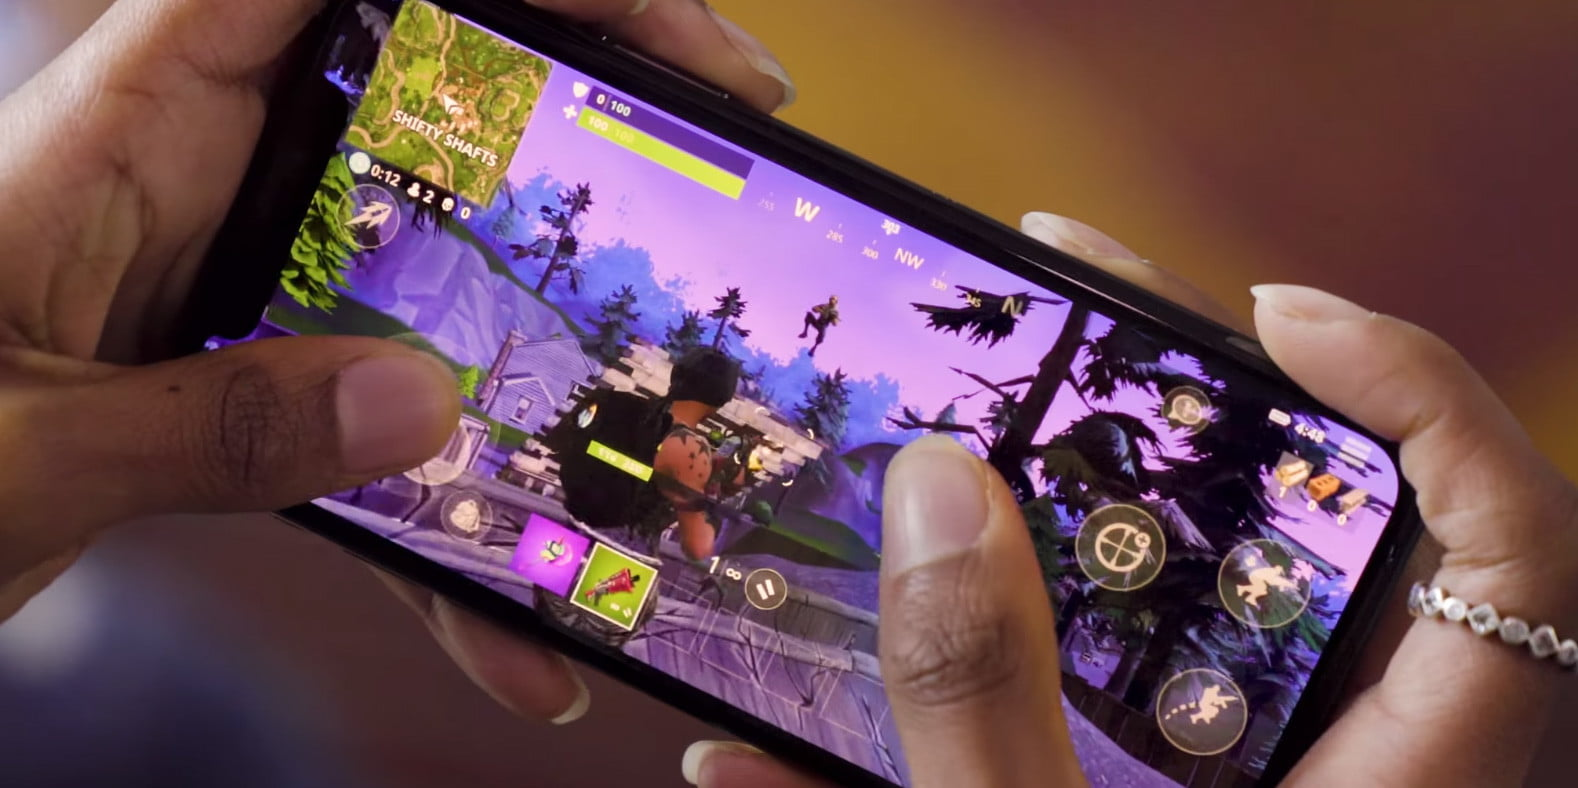 New Fortnite Mobile Features Coming Soon: 60 FPS, Controller